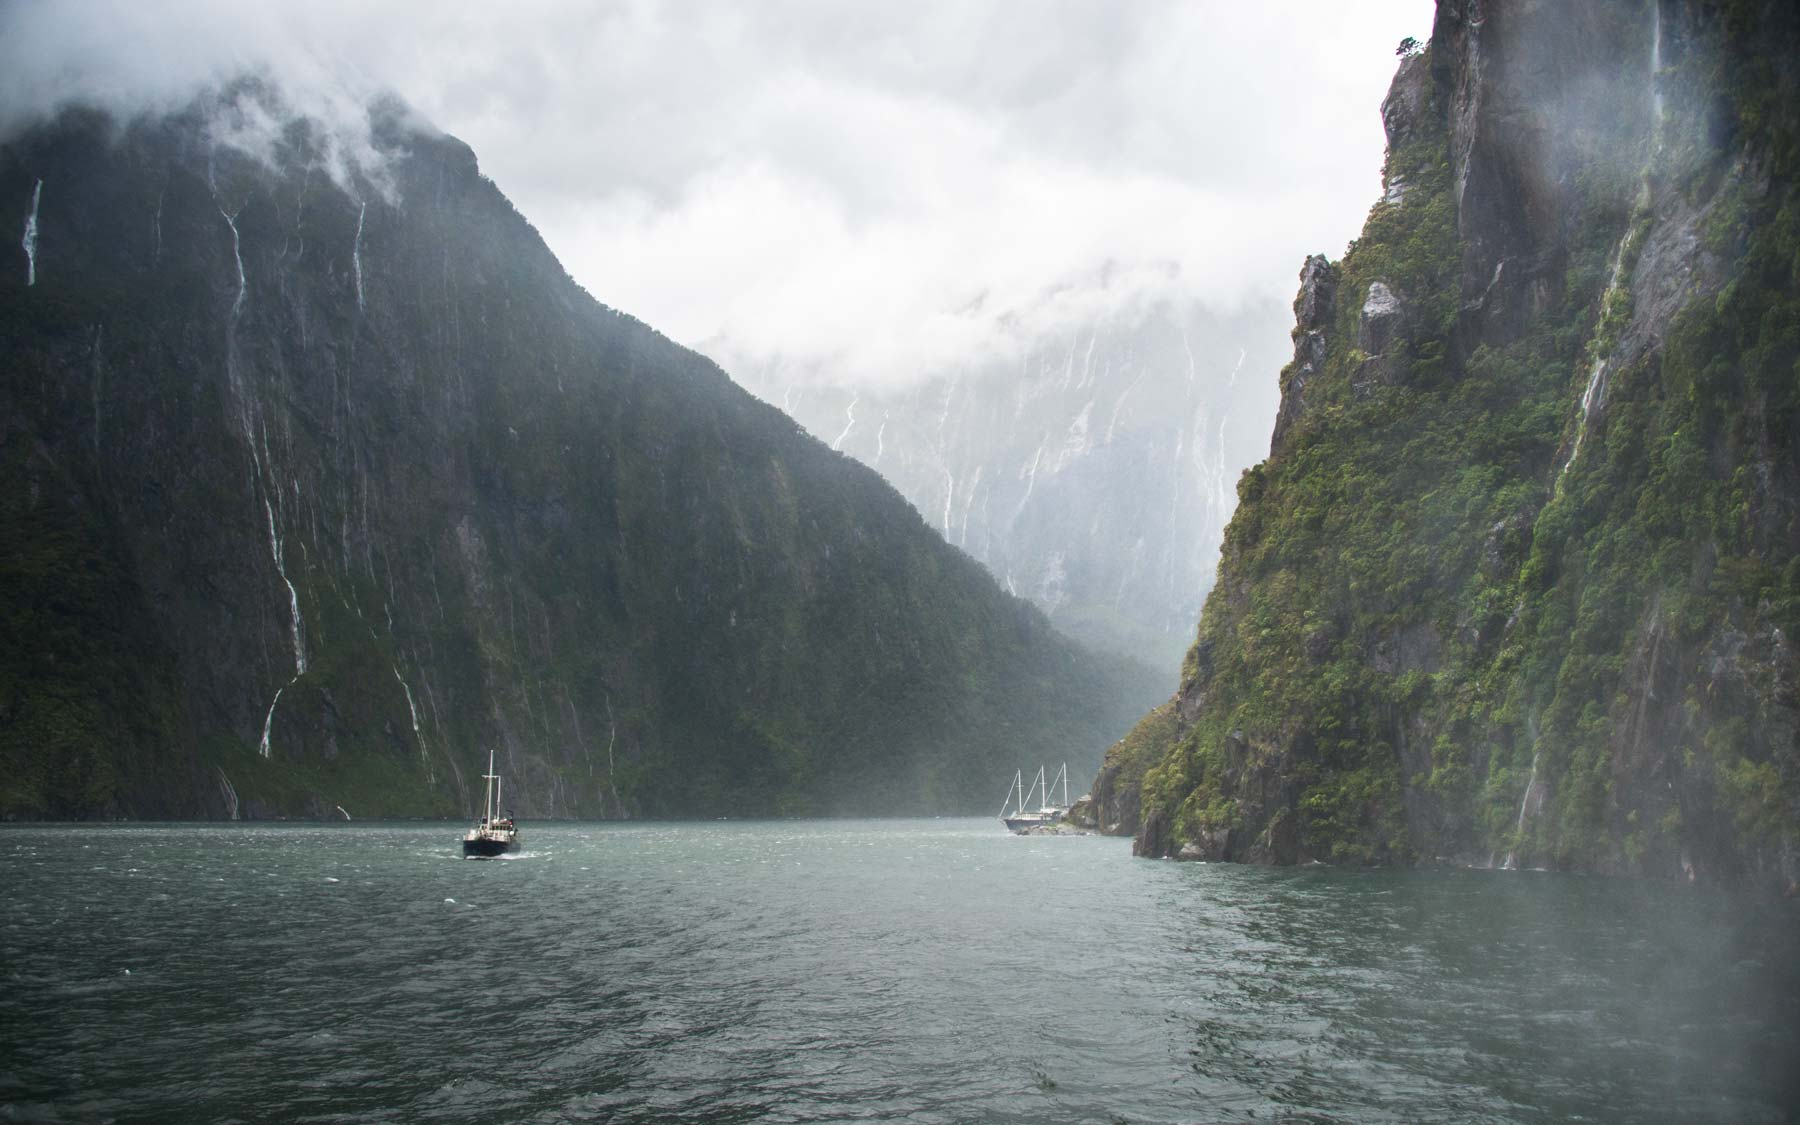 Looking inland through the inner reaches of Milford Sound.